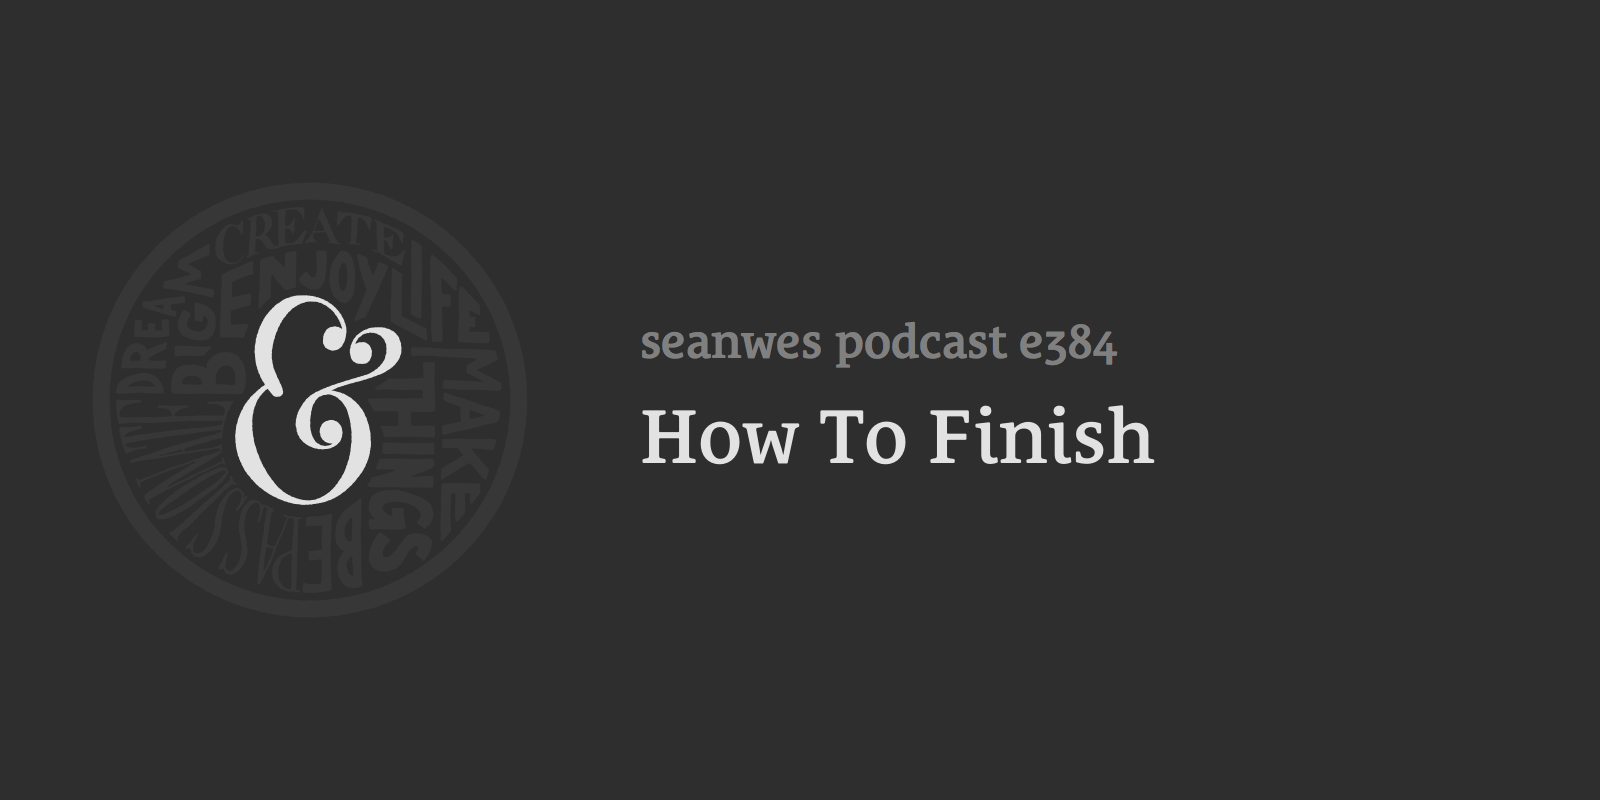 How To Finish